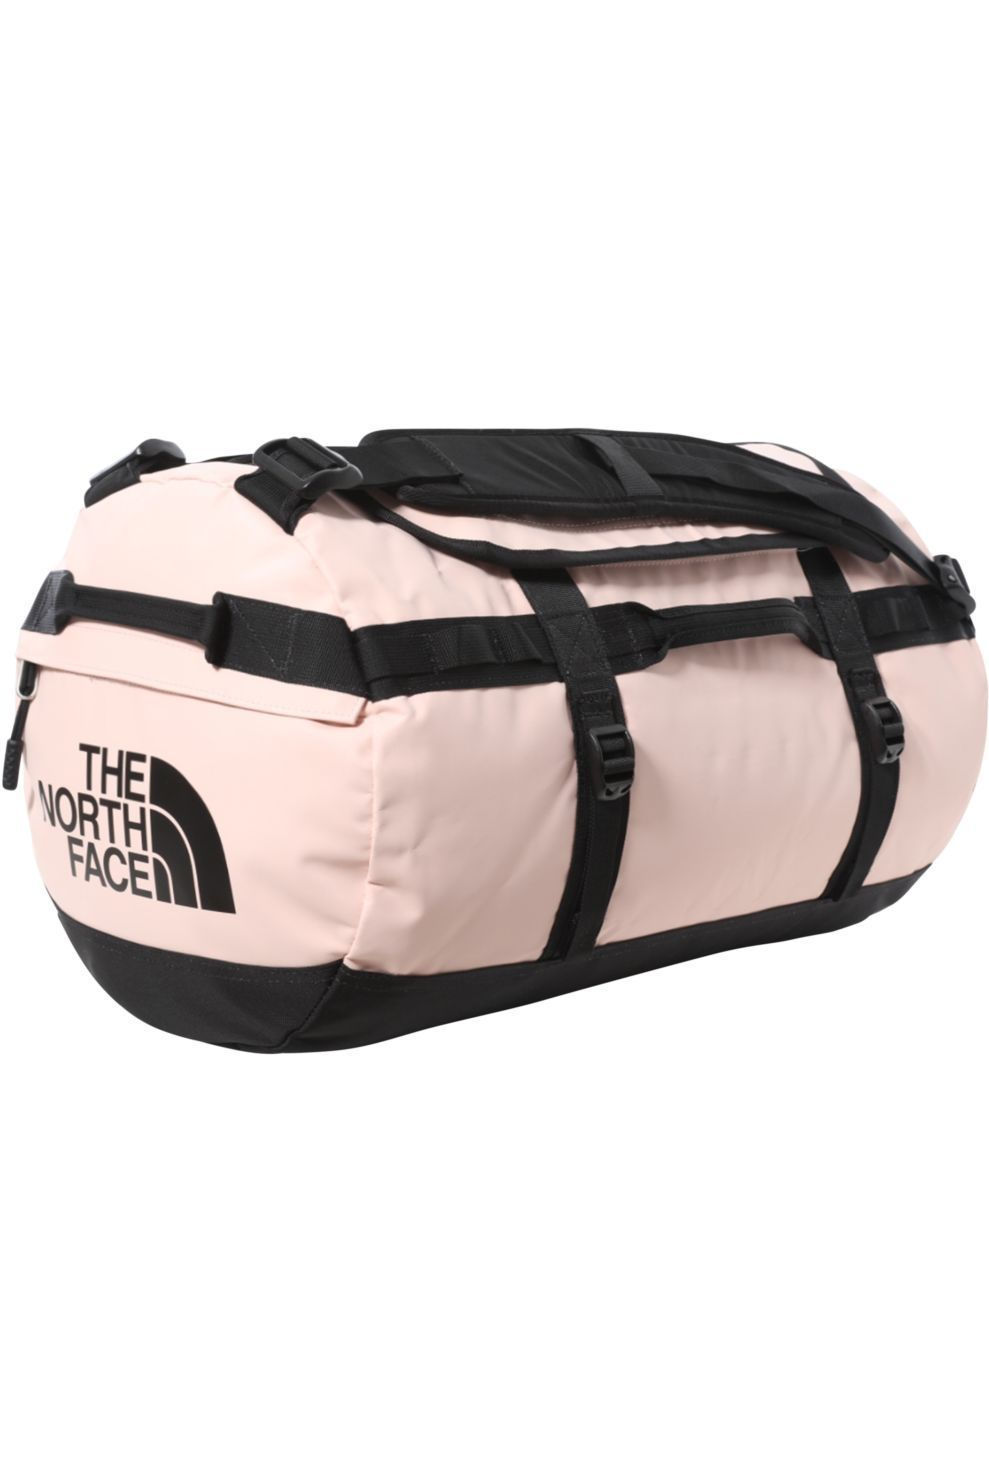 The North Face Reistas Base Camp Duffel S/50L - Roze/Zwart - Maat: S